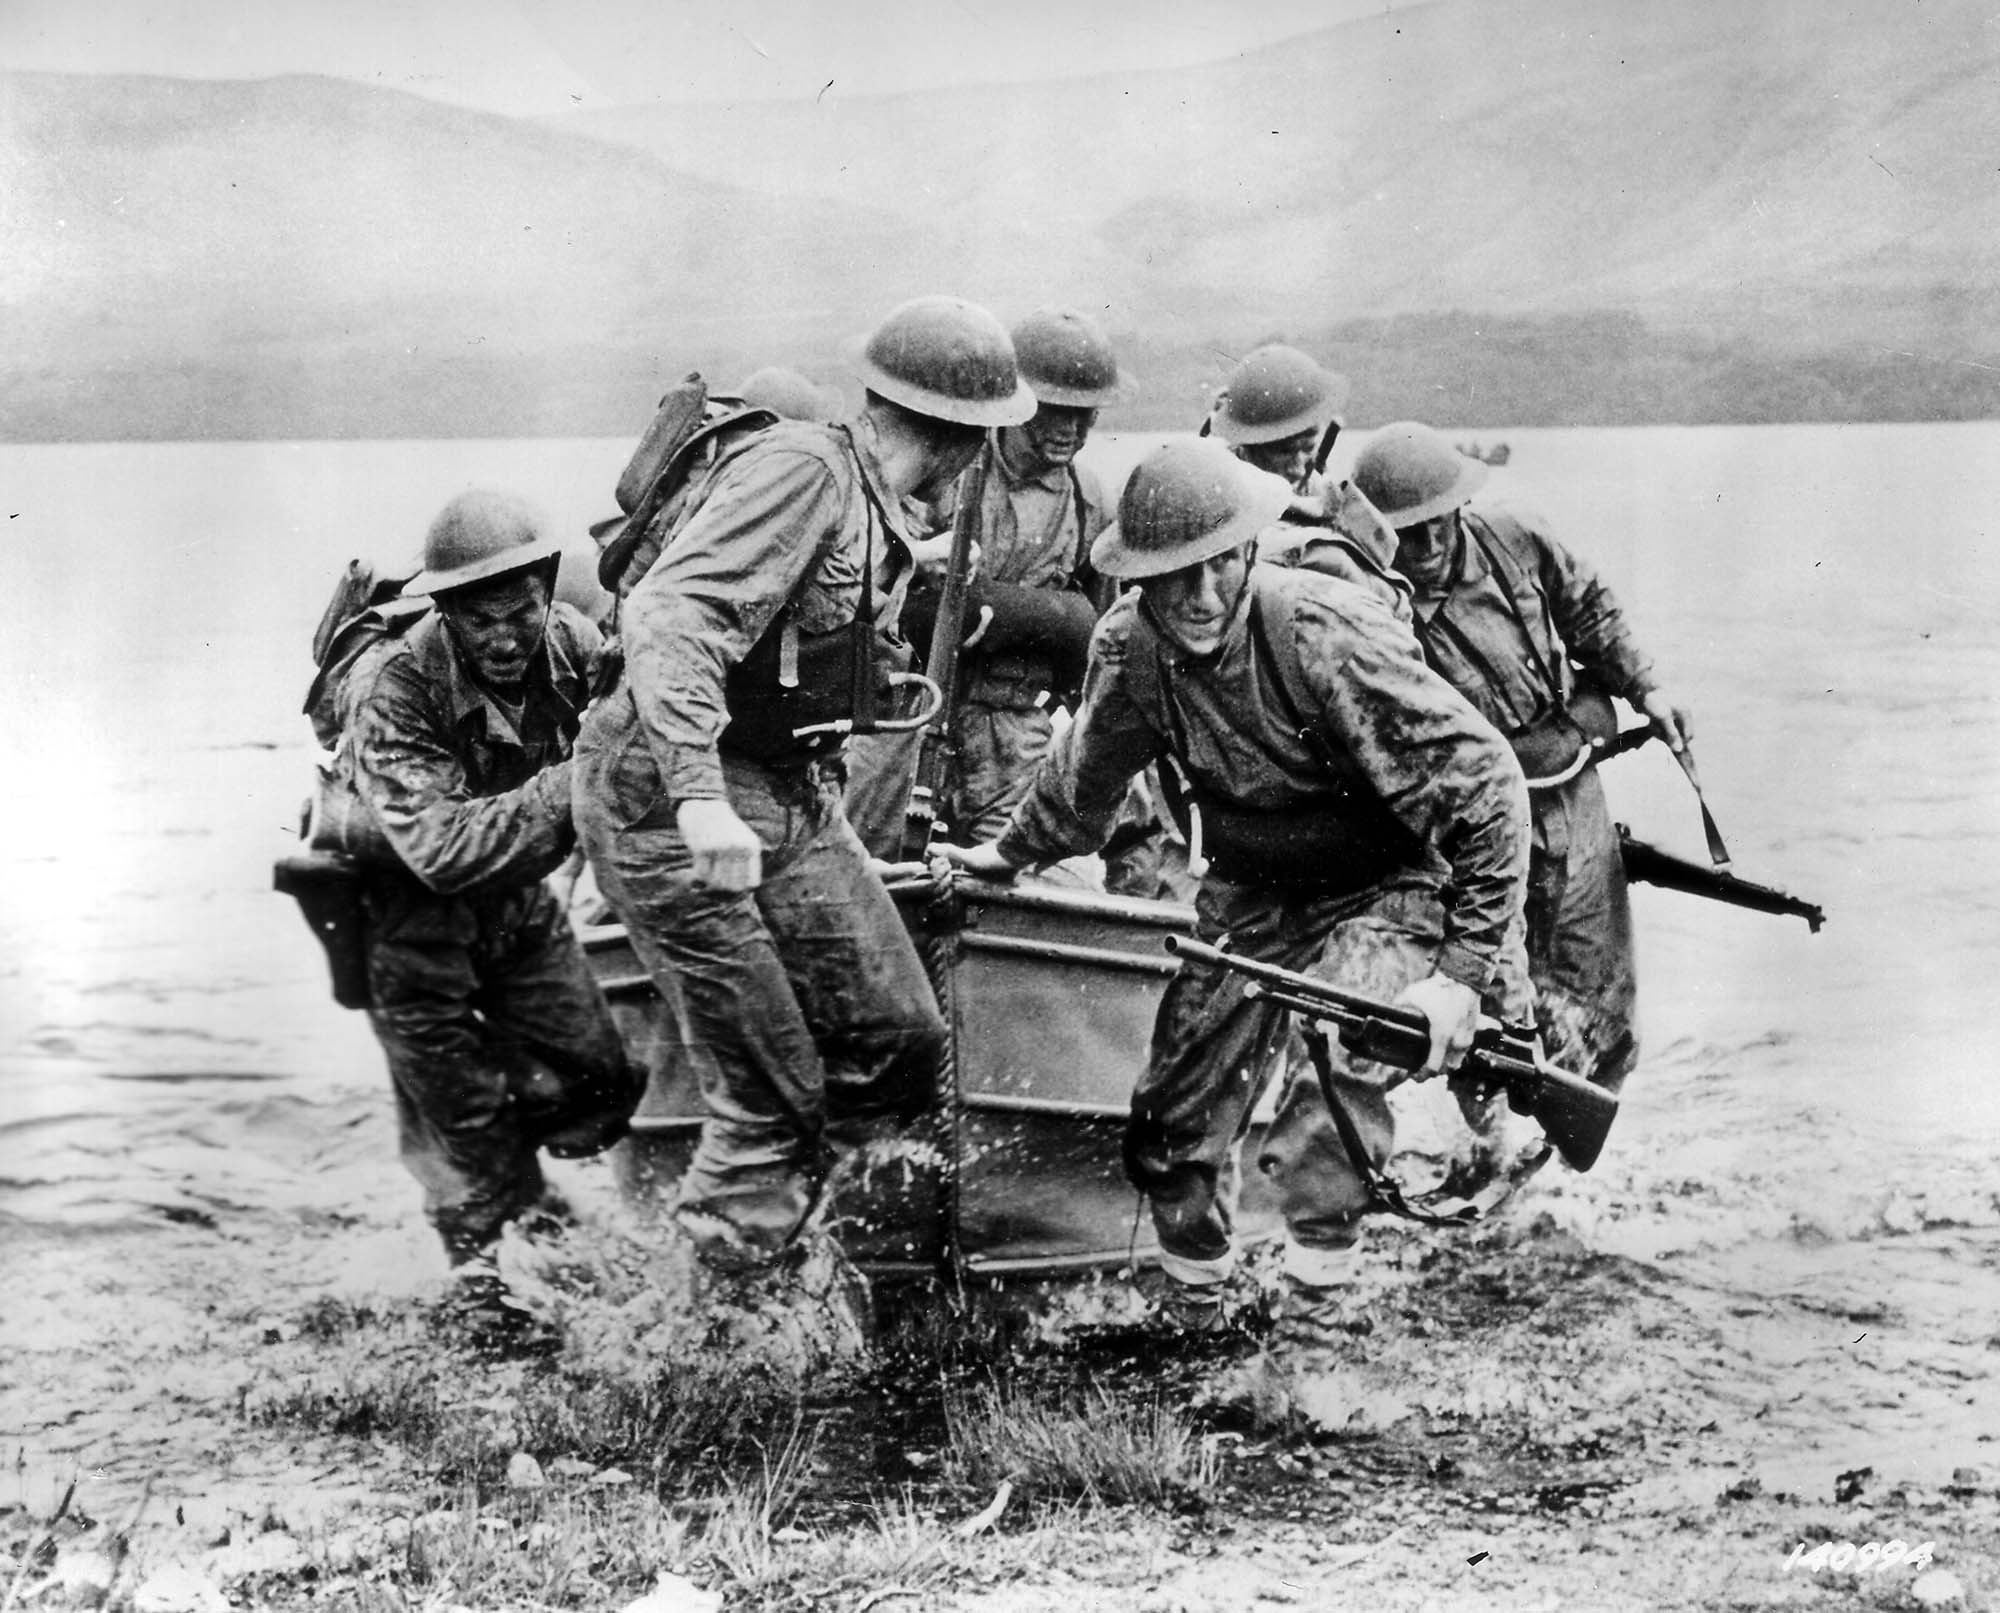 a photo of a group of soldiers bring a boat ashore on a lake